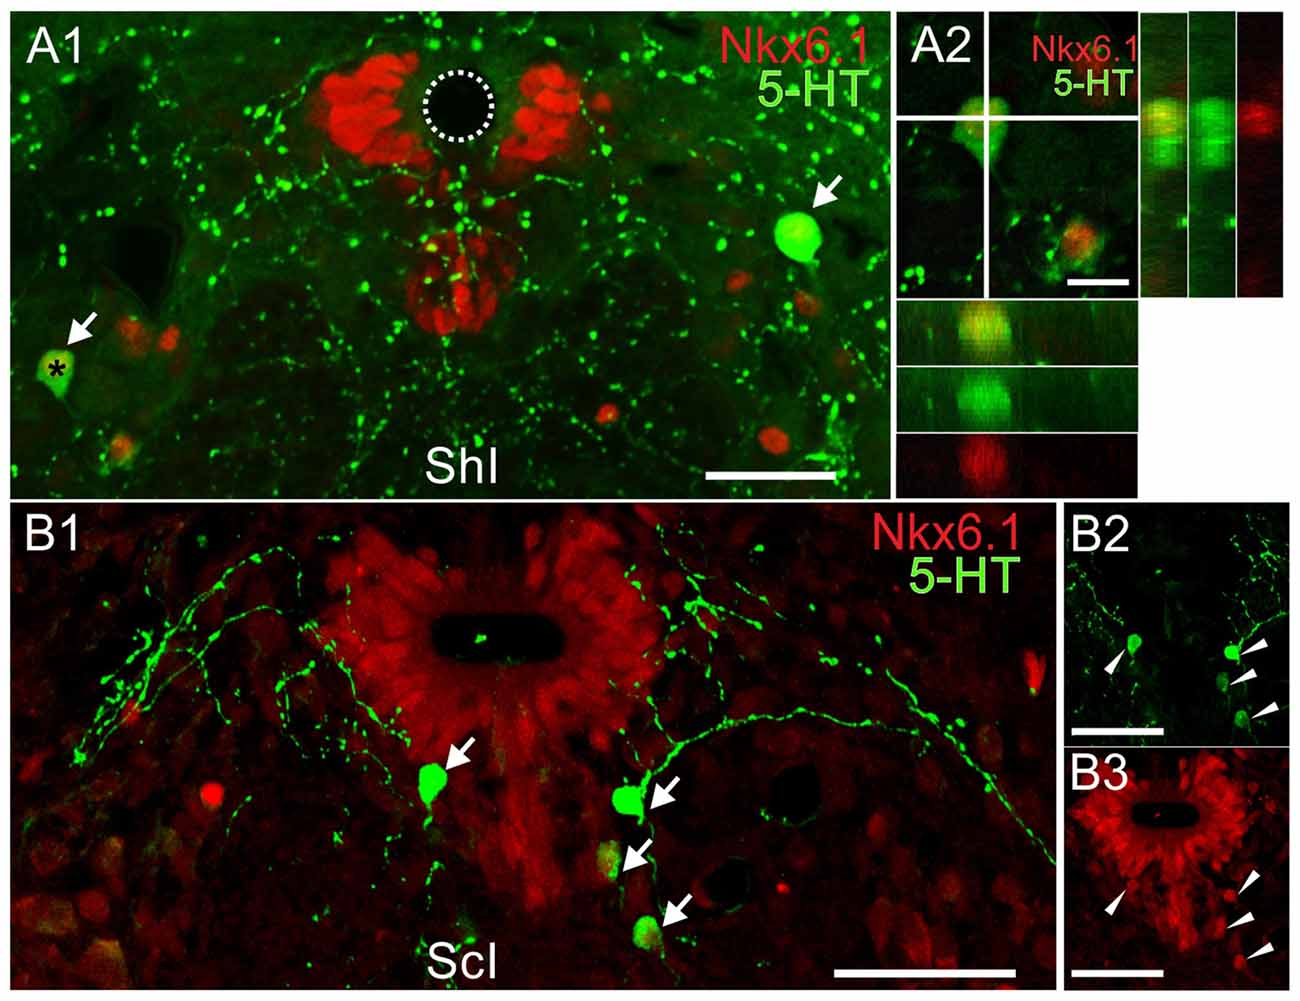 Frontiers Emergence Of Serotonergic Neurons After Spinal Cord